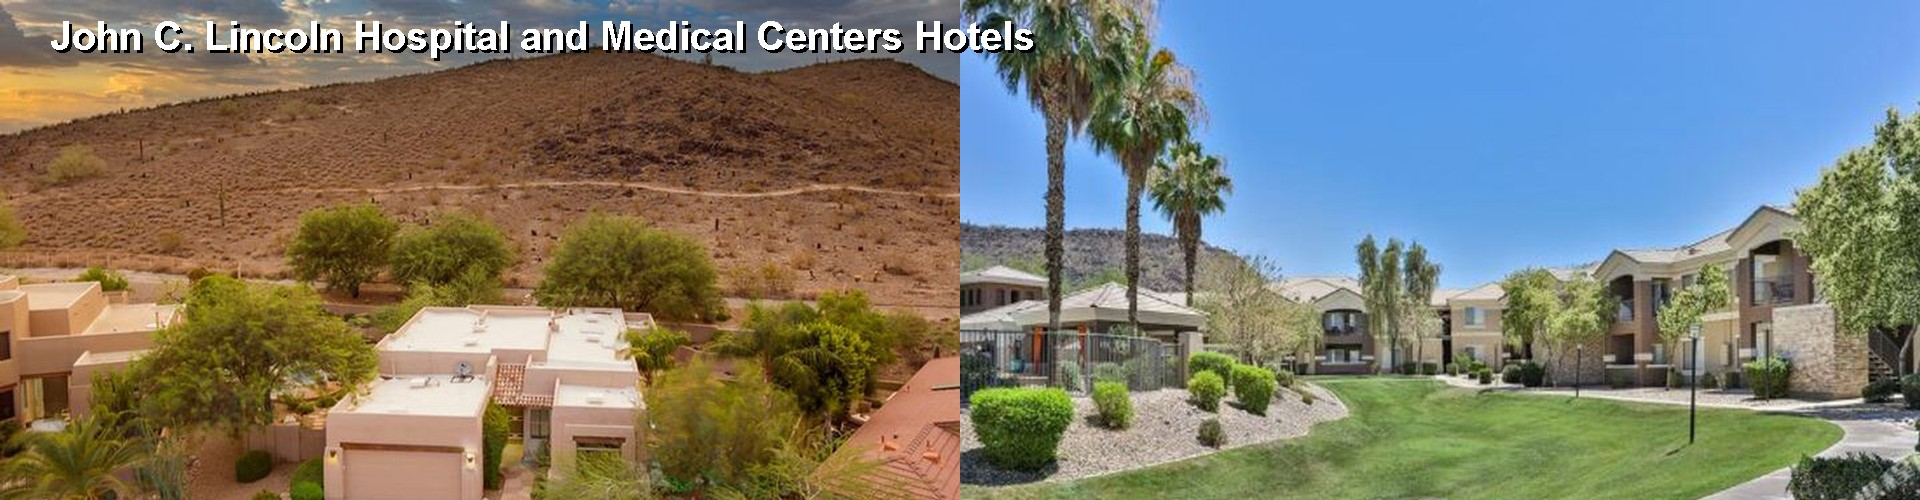 4 Best Hotels near John C. Lincoln Hospital and Medical Centers